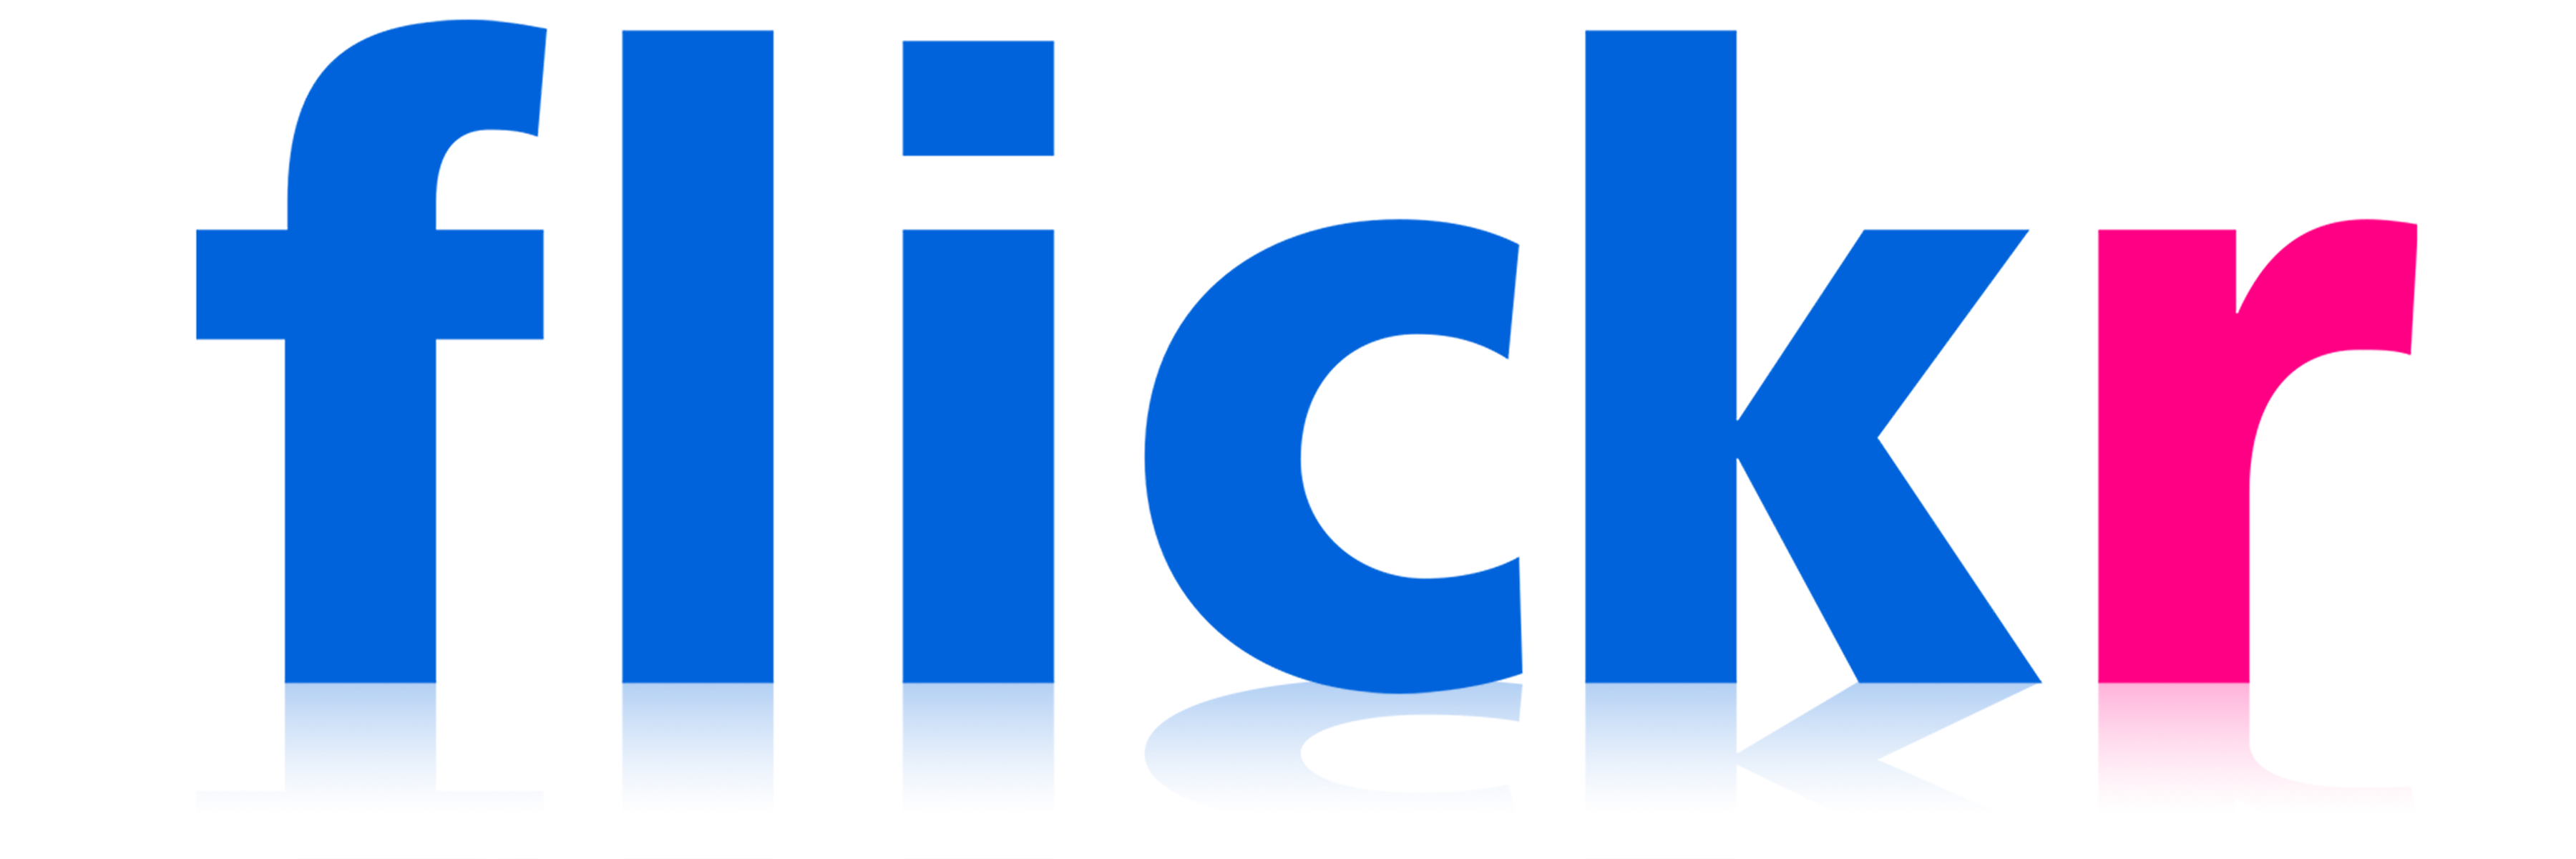 flickr-logo.png